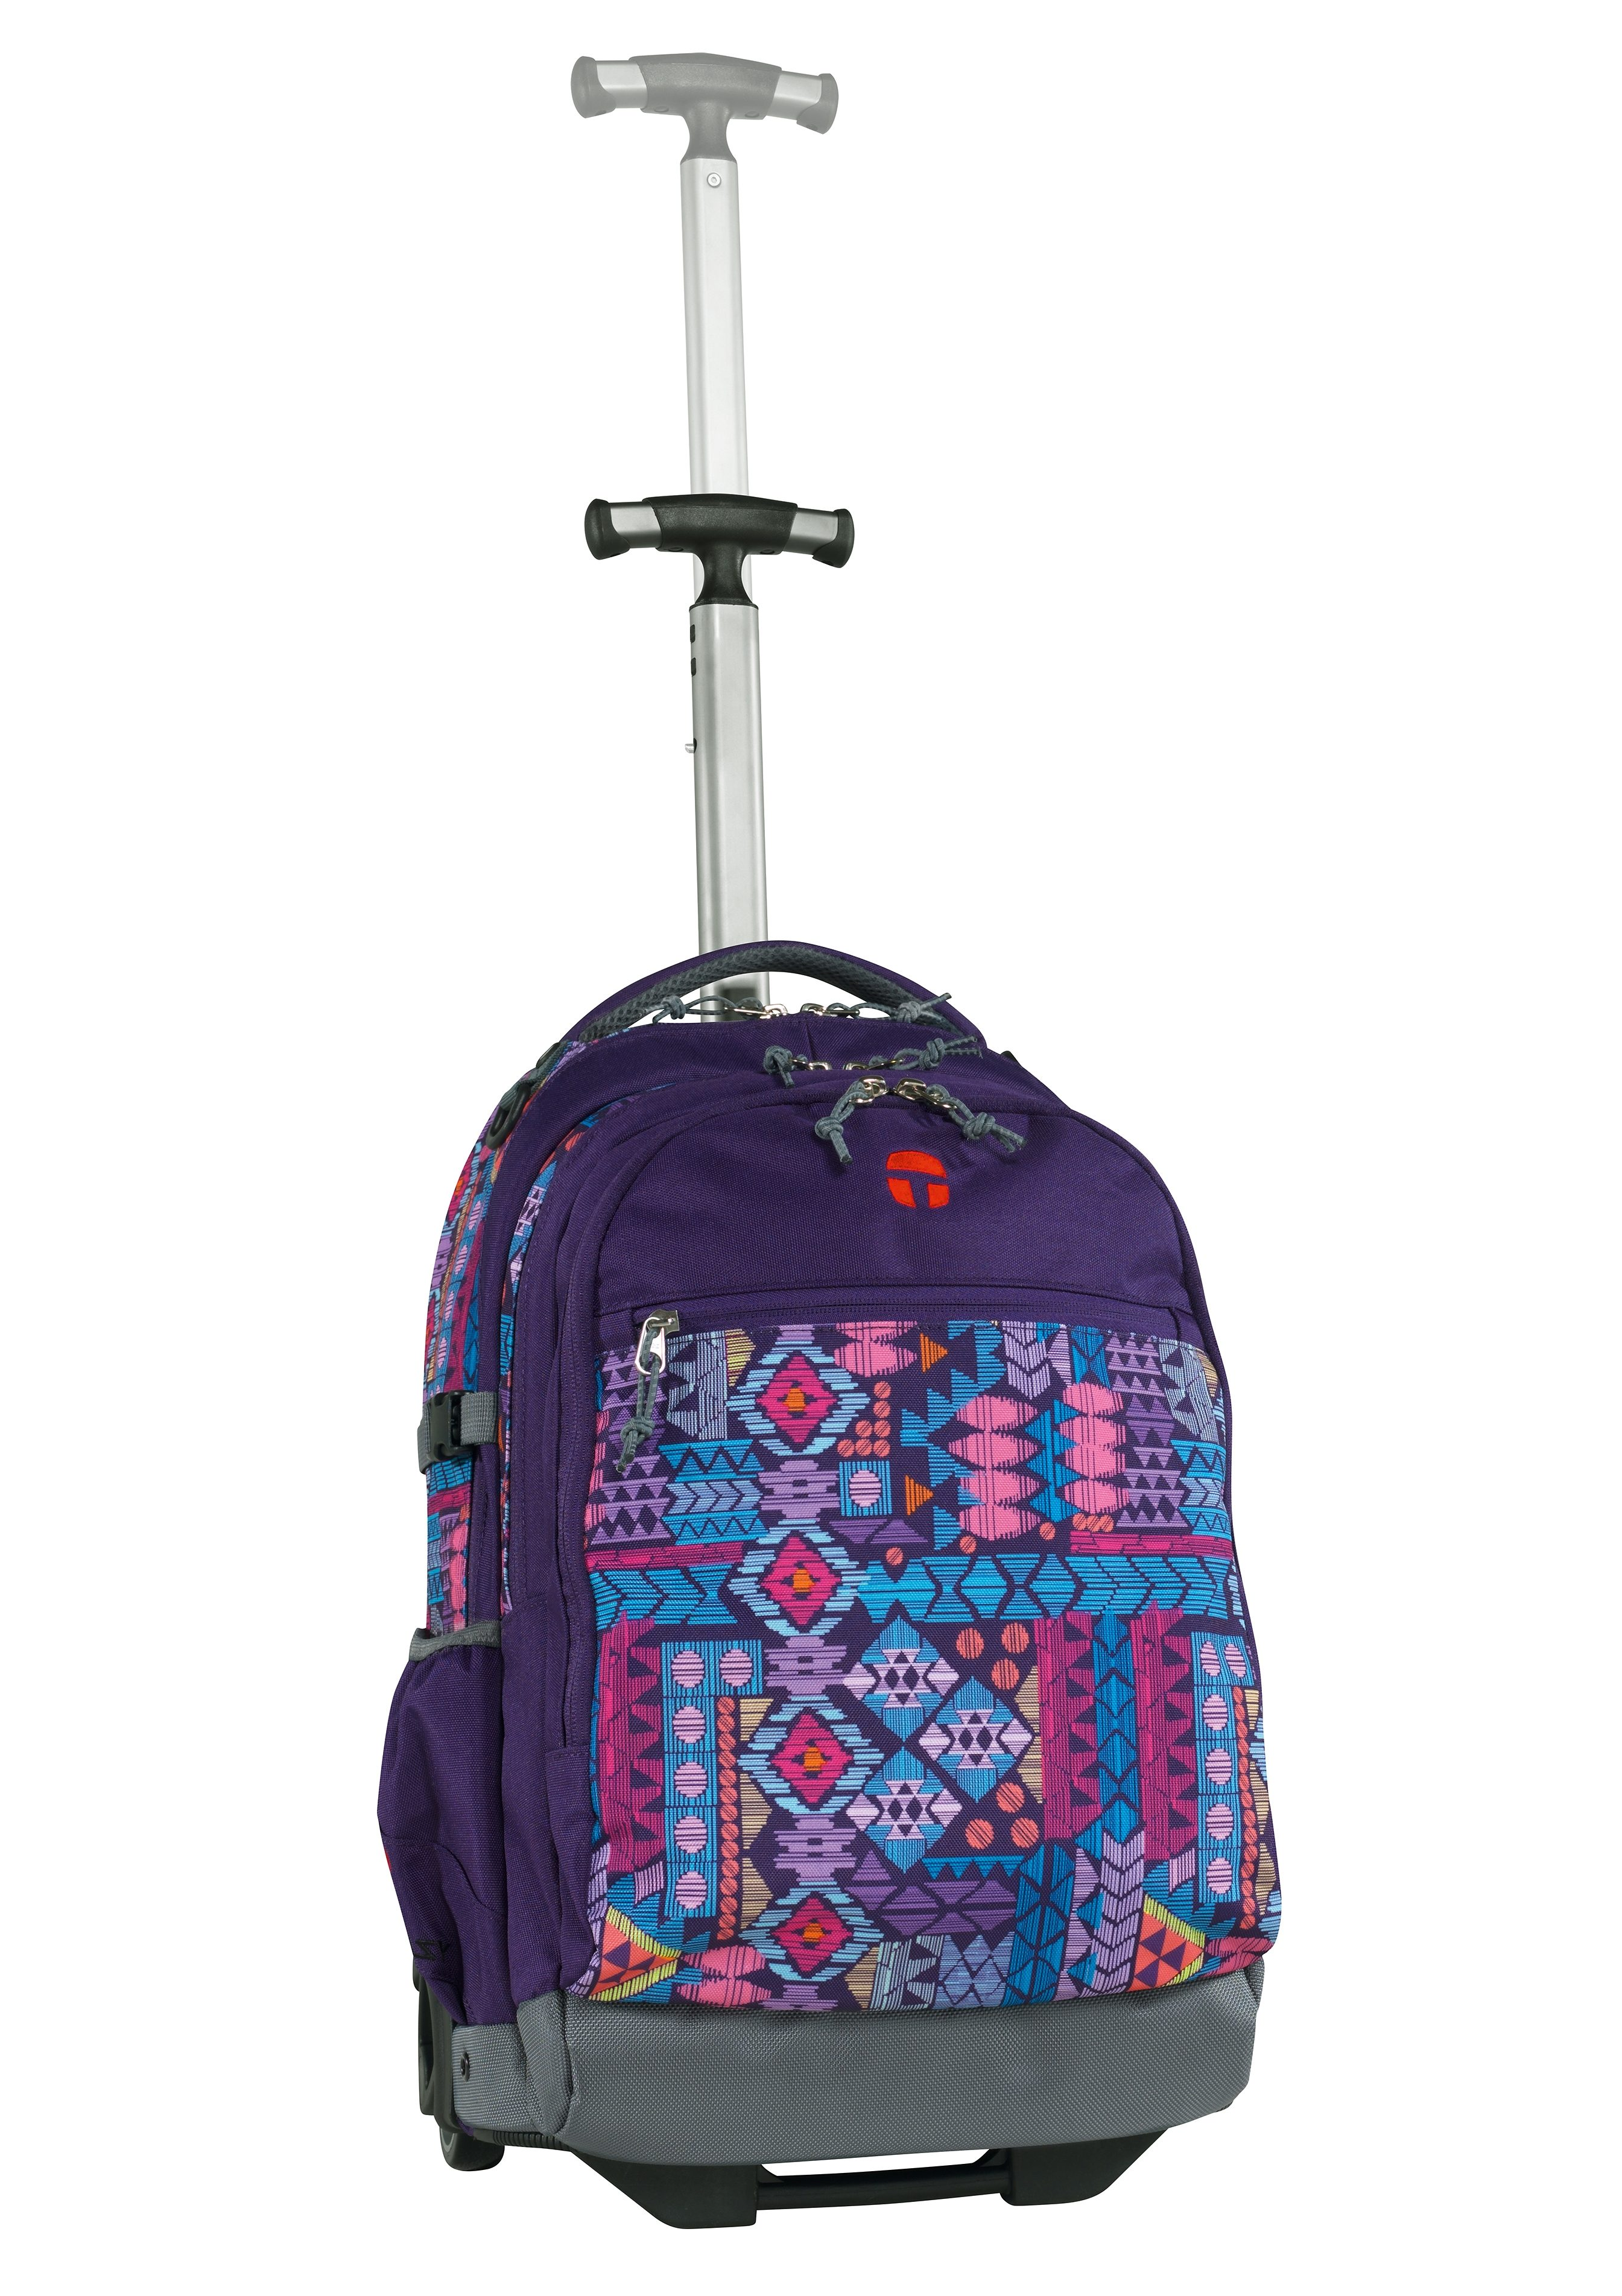 TAKE IT EASY® Rucksack mit Telskoparm, »Barcelona Aztec«